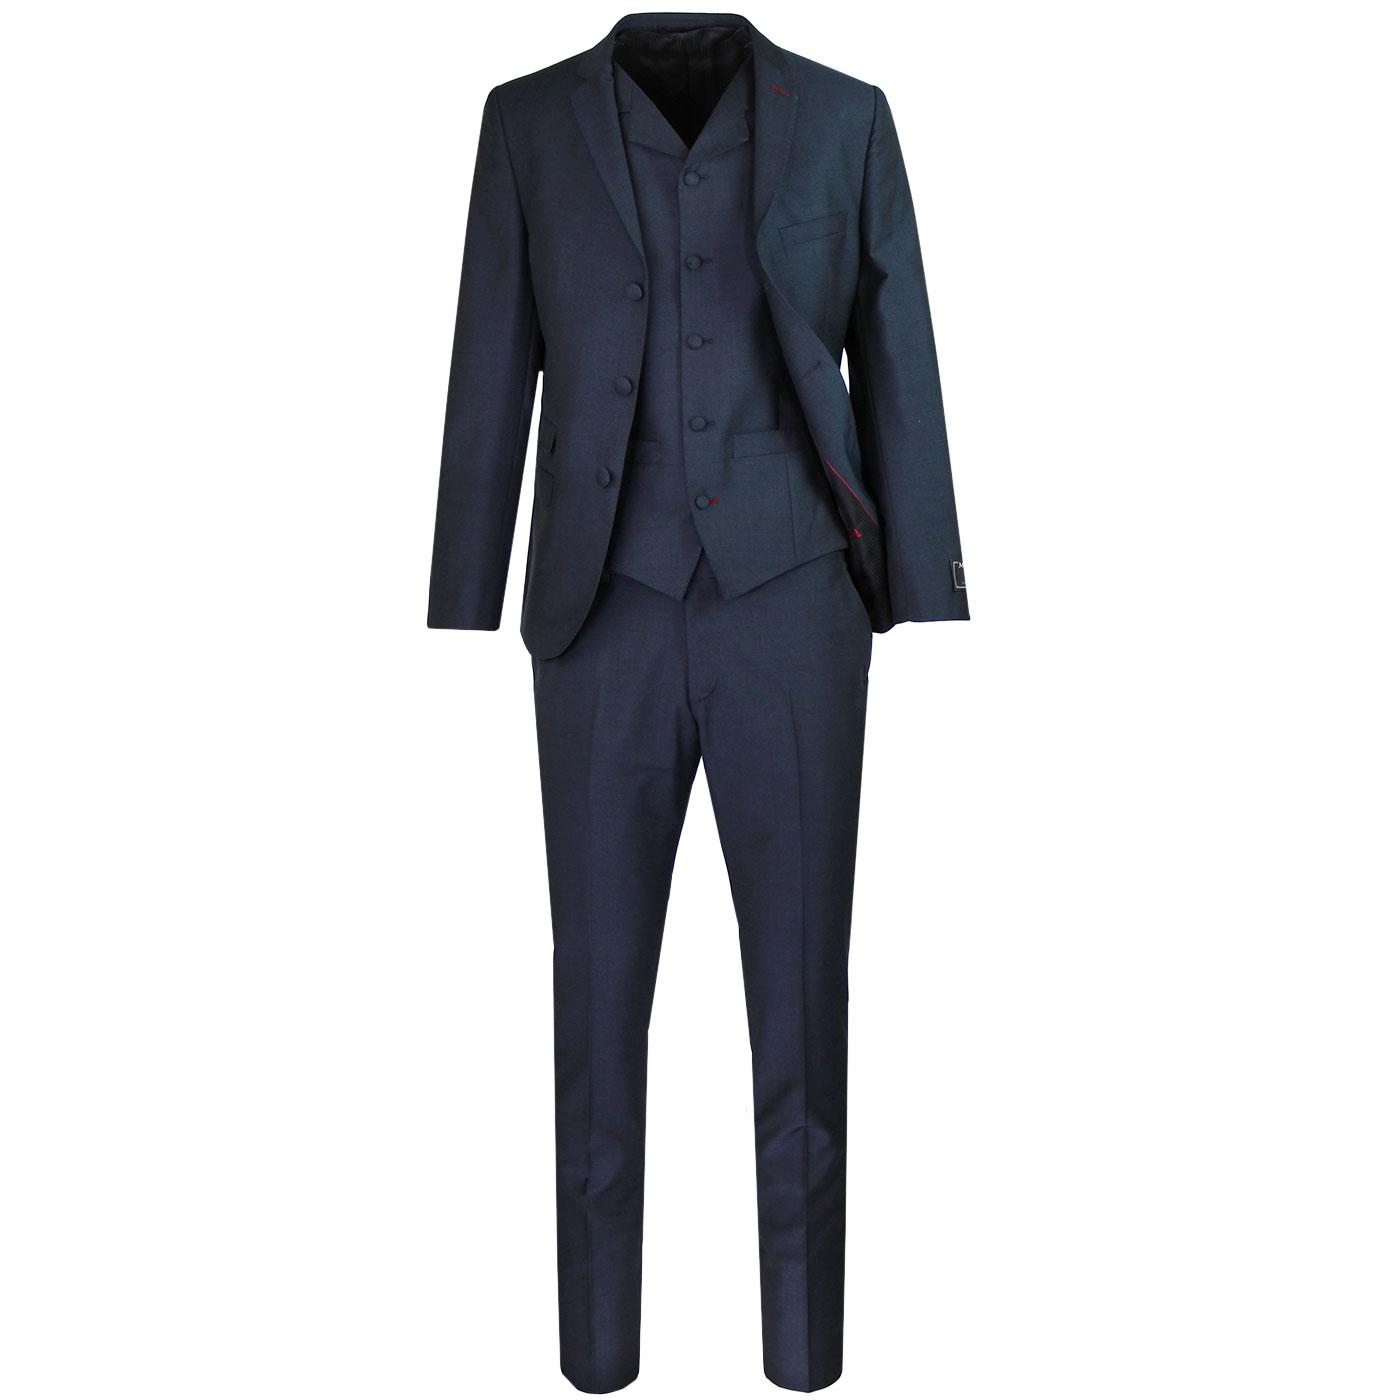 MADCAP ENGLAND 60s Mod Mohair Suit in Navy Tonic